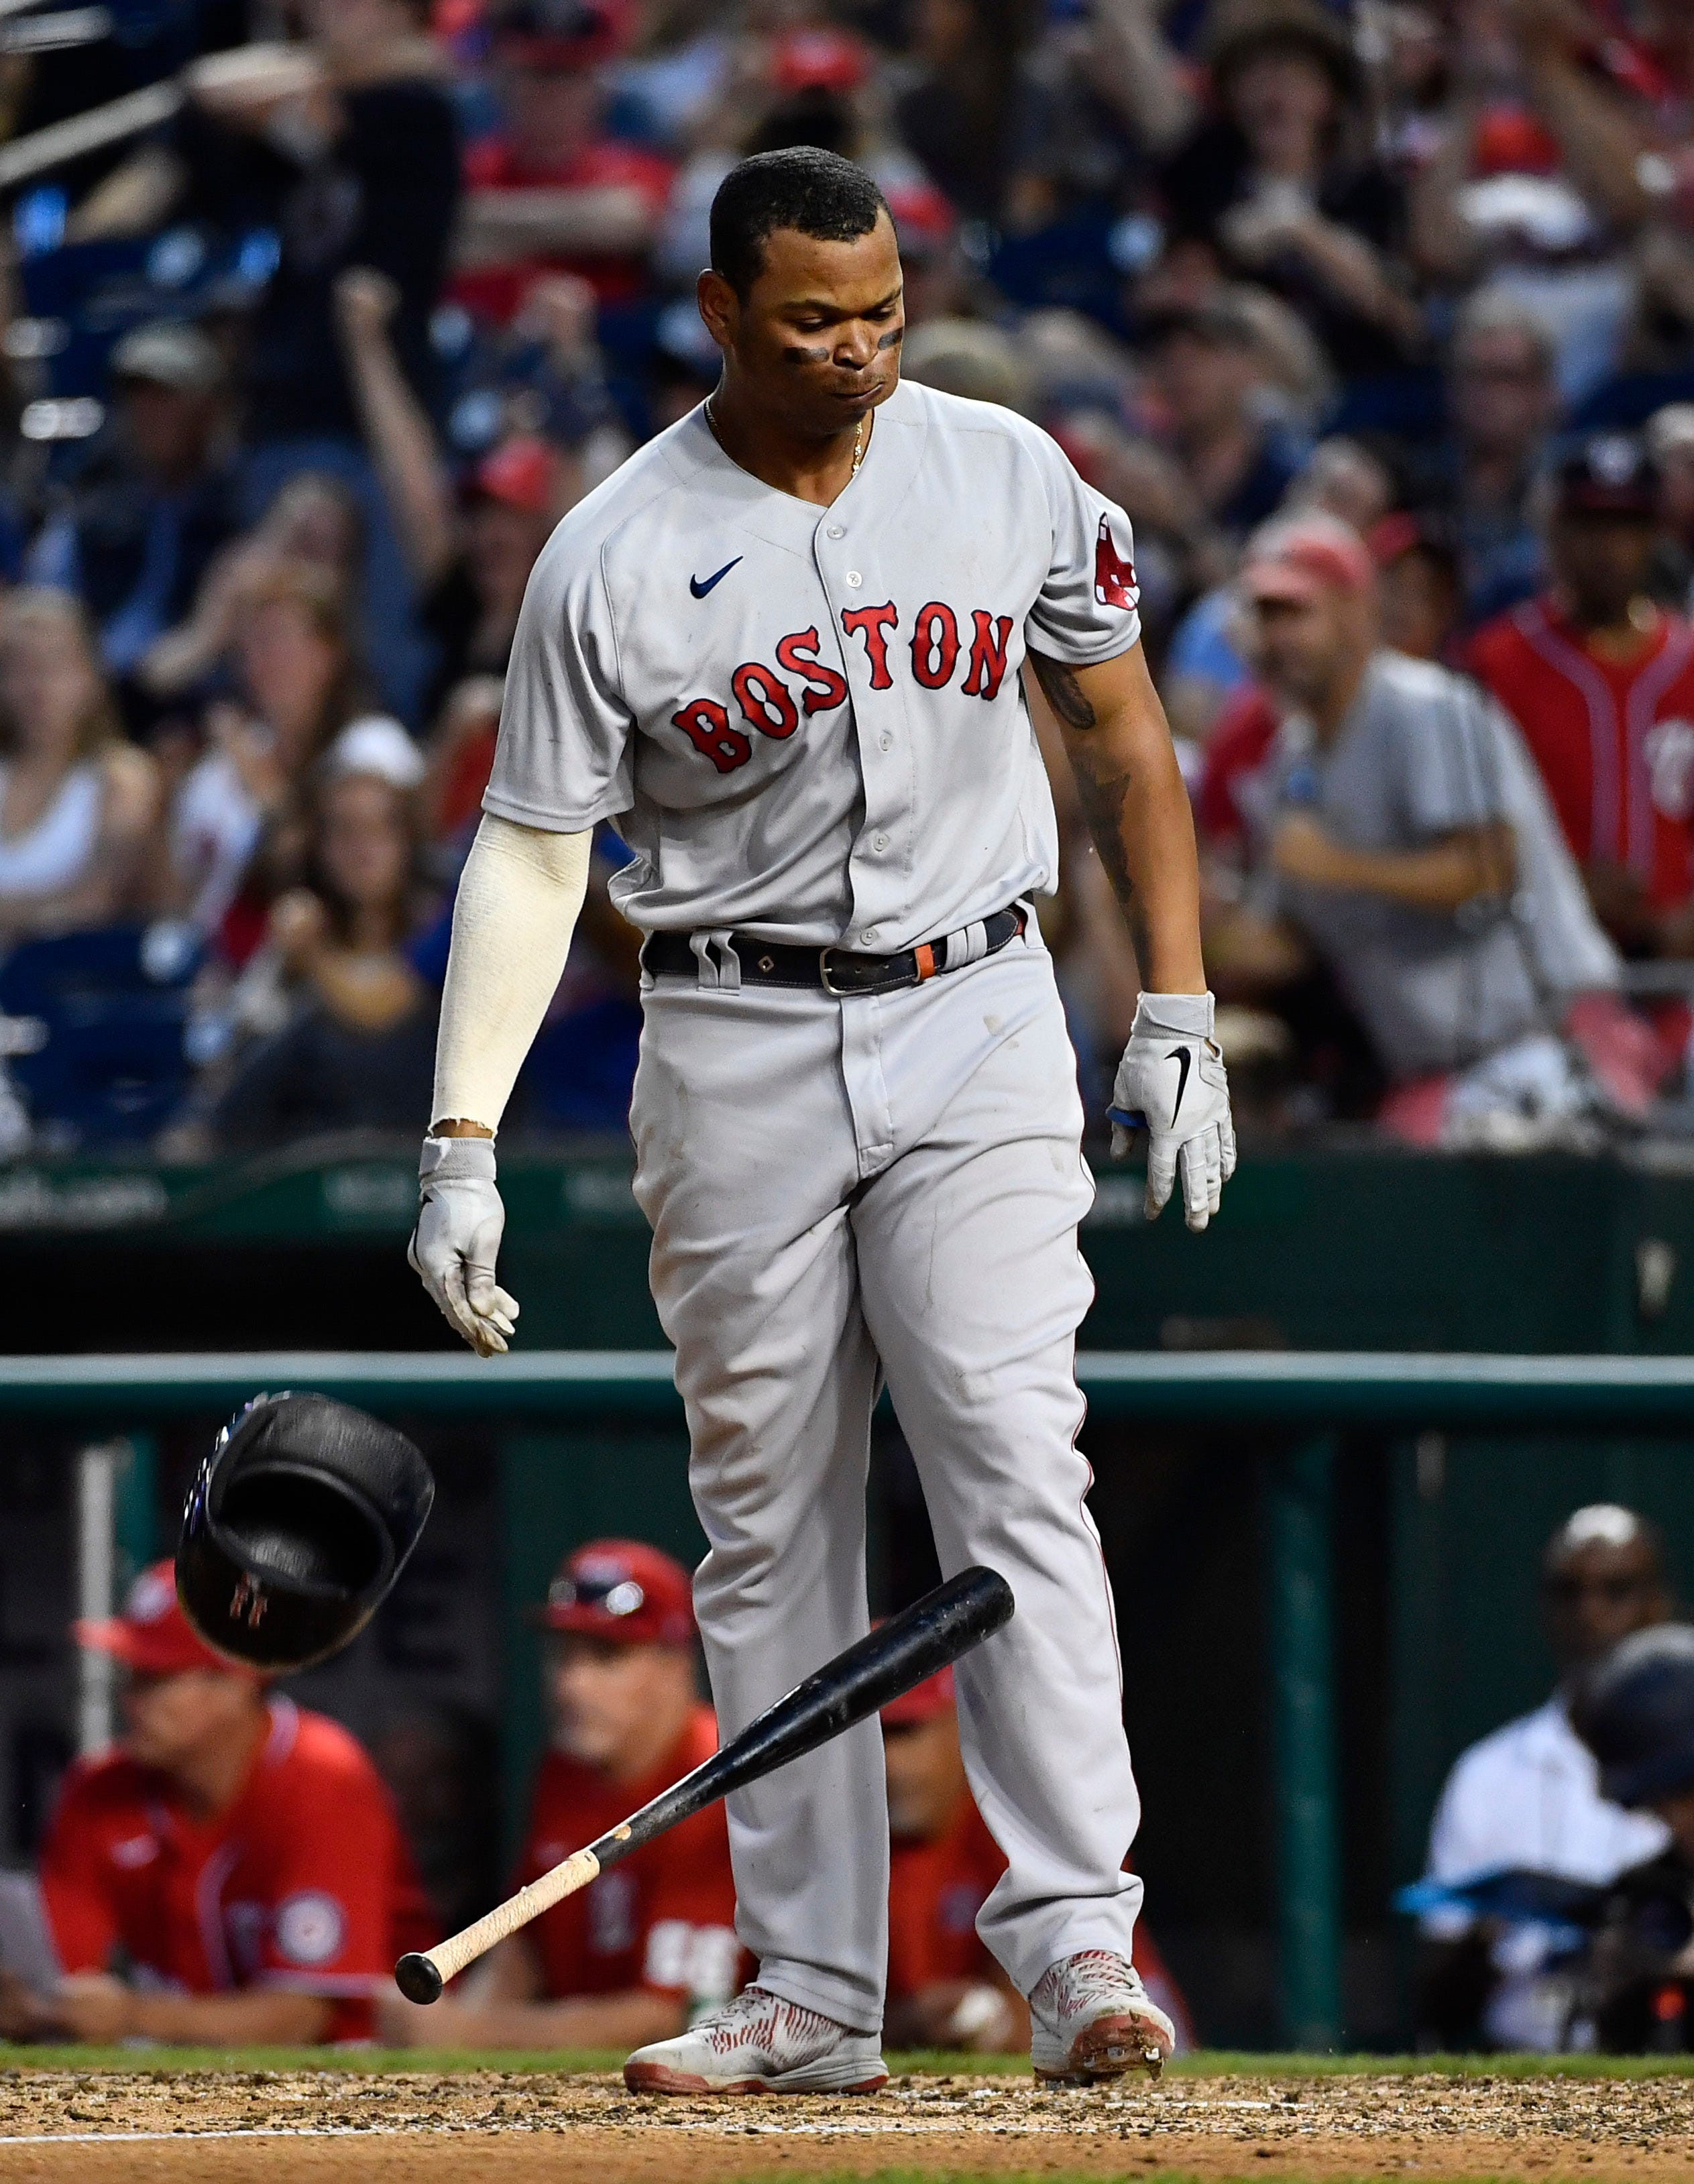 Tomorrow counts : Red Sox, Yankees stagger into final day of season needing wins to clinch AL wild-card spots